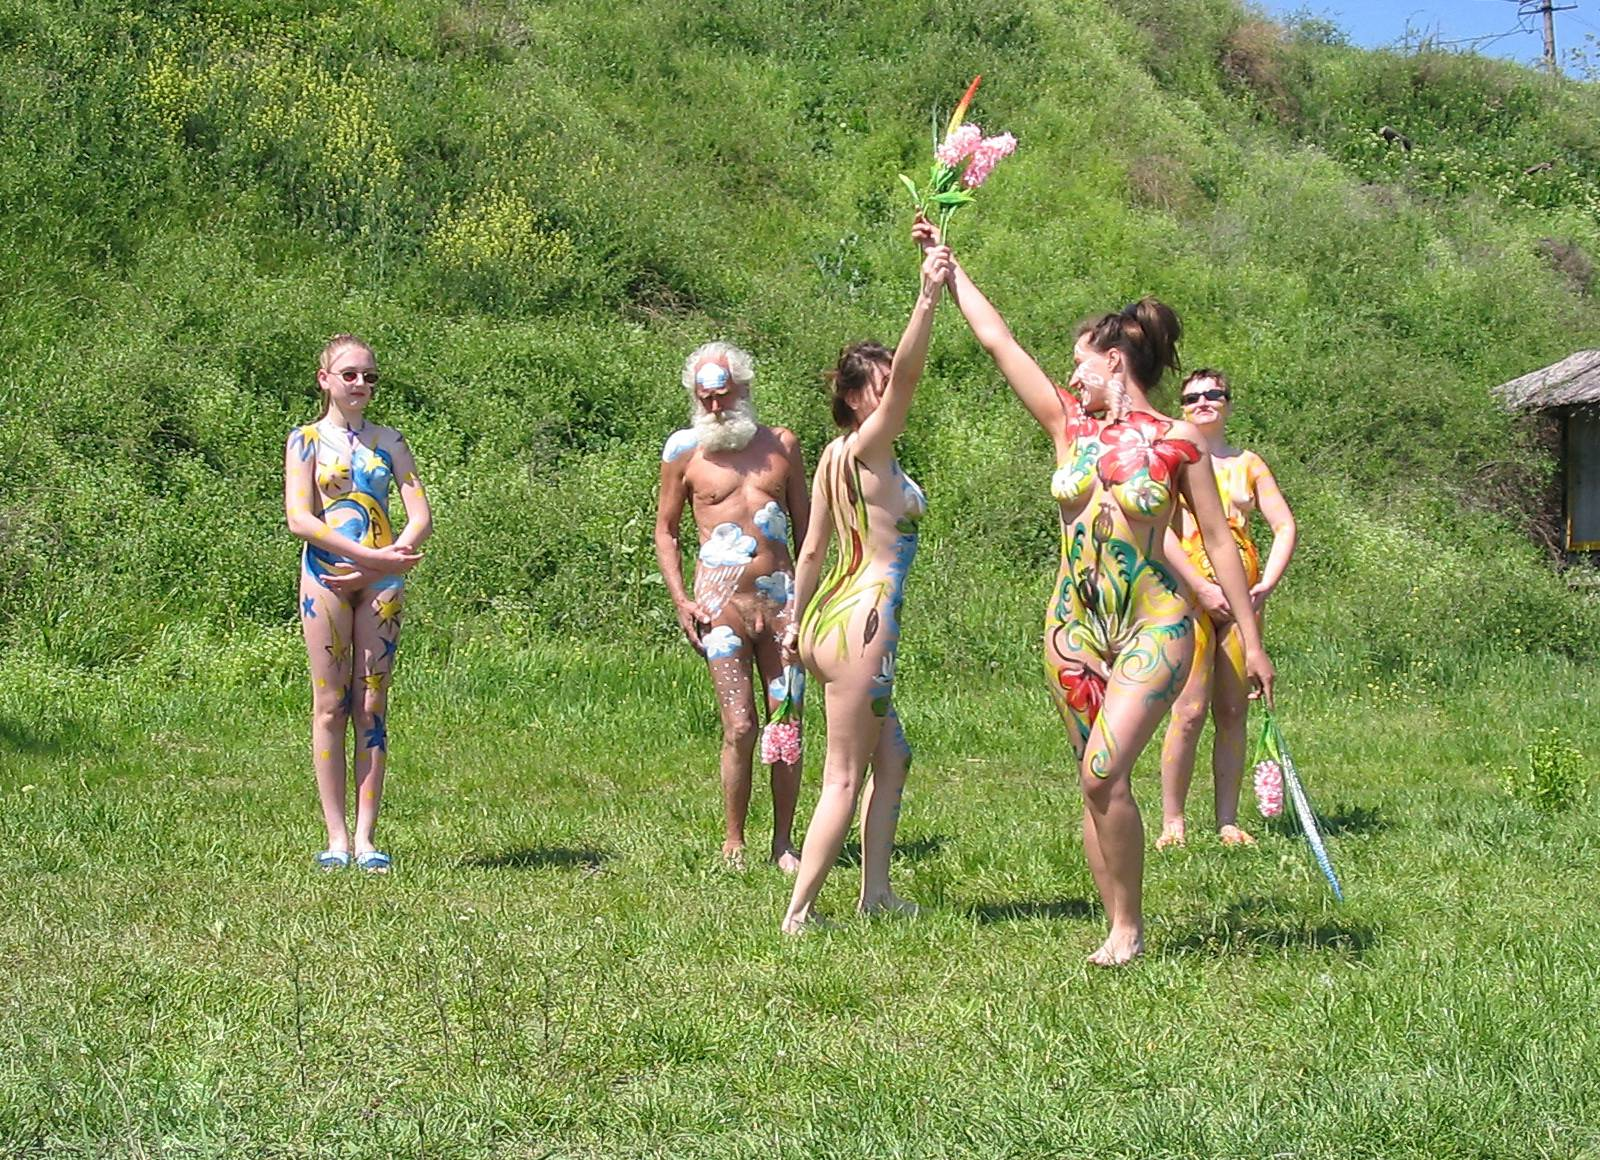 Pure Nudism Gallery Grassy Hill Performances - 1